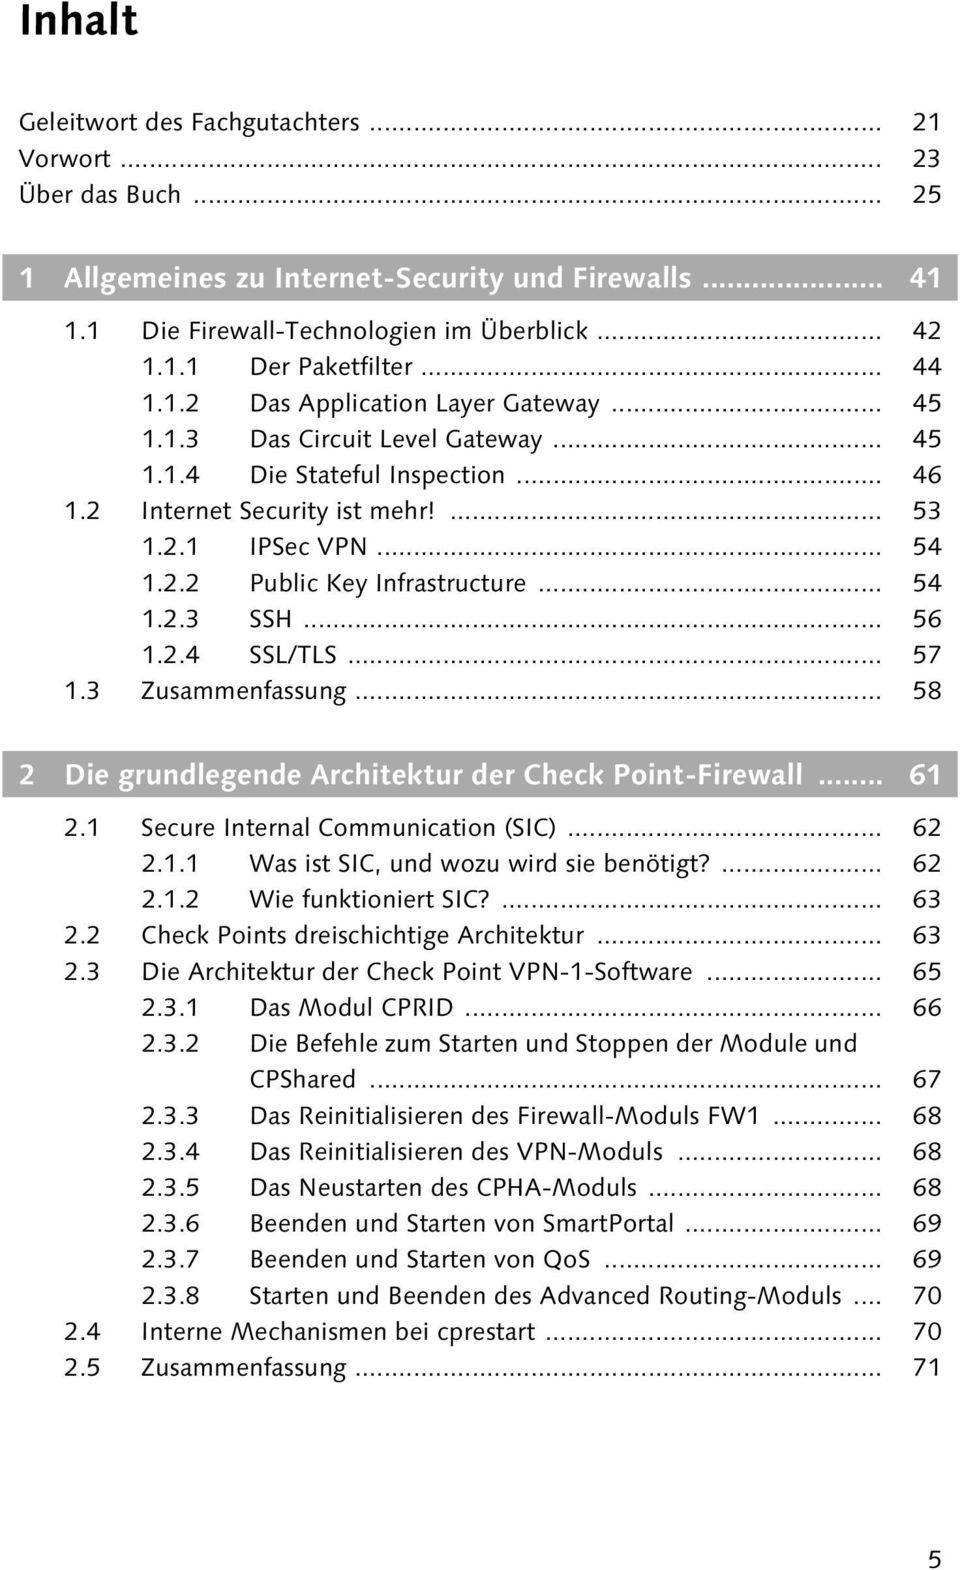 .. 54 1.2.3 SSH... 56 1.2.4 SSL/TLS... 57 1.3 Zusammenfassung... 58 2 Die grundlegende Architektur der Check Point-Firewall... 61 2.1 Secure Internal Communication (SIC)... 62 2.1.1 Was ist SIC, und wozu wird sie benötigt?